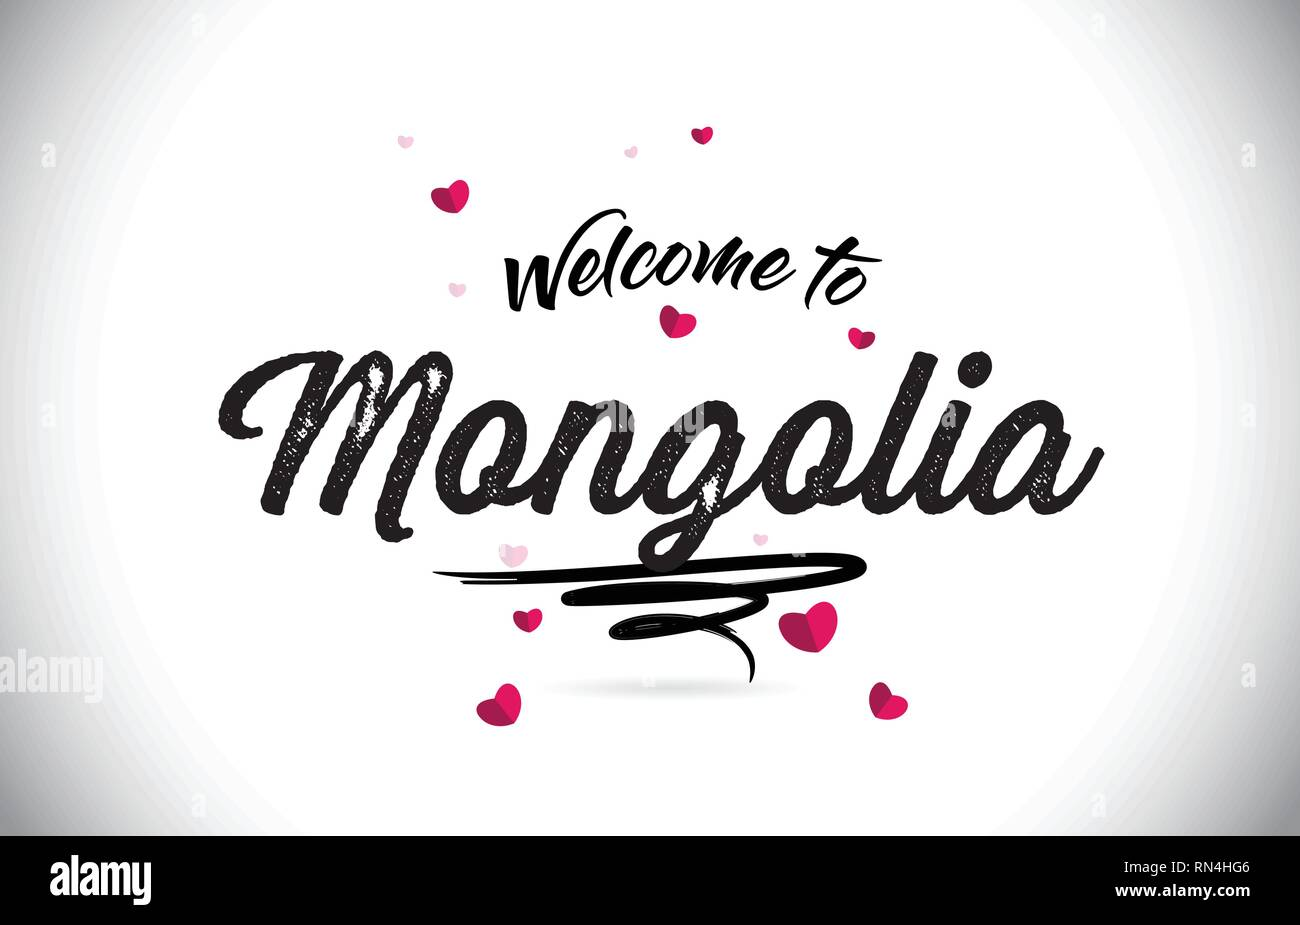 Mongolia Welcome To Word Text with Handwritten Font and Pink Heart Shape Design Vector Illustration. - Stock Vector